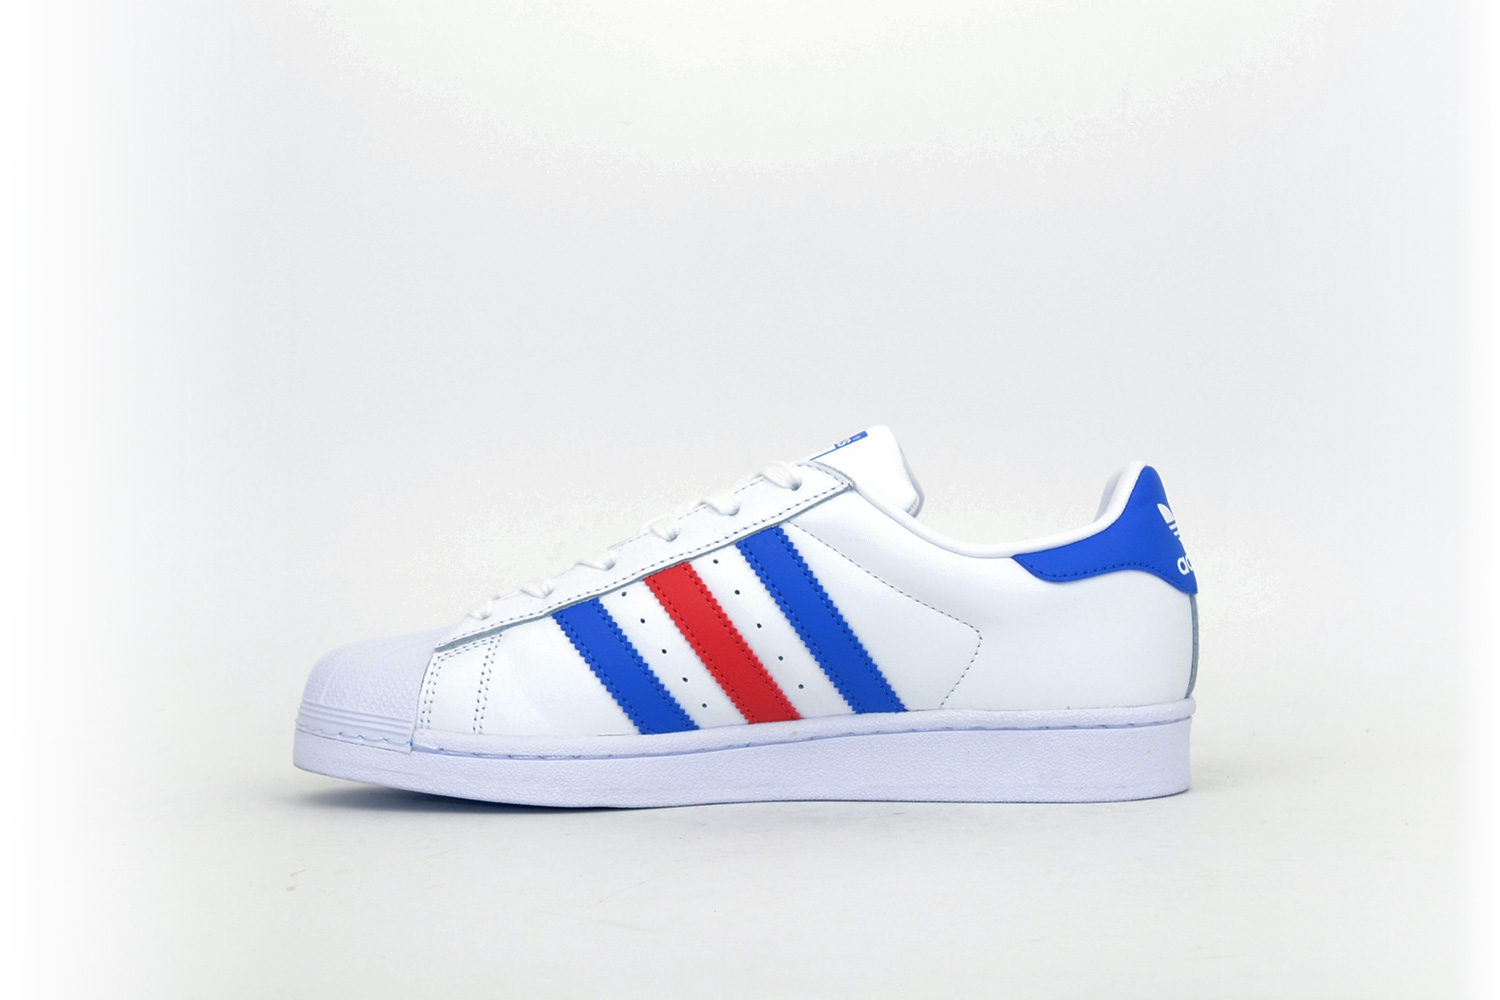 adidas superstar wei blau rot f low s dein sneaker store. Black Bedroom Furniture Sets. Home Design Ideas